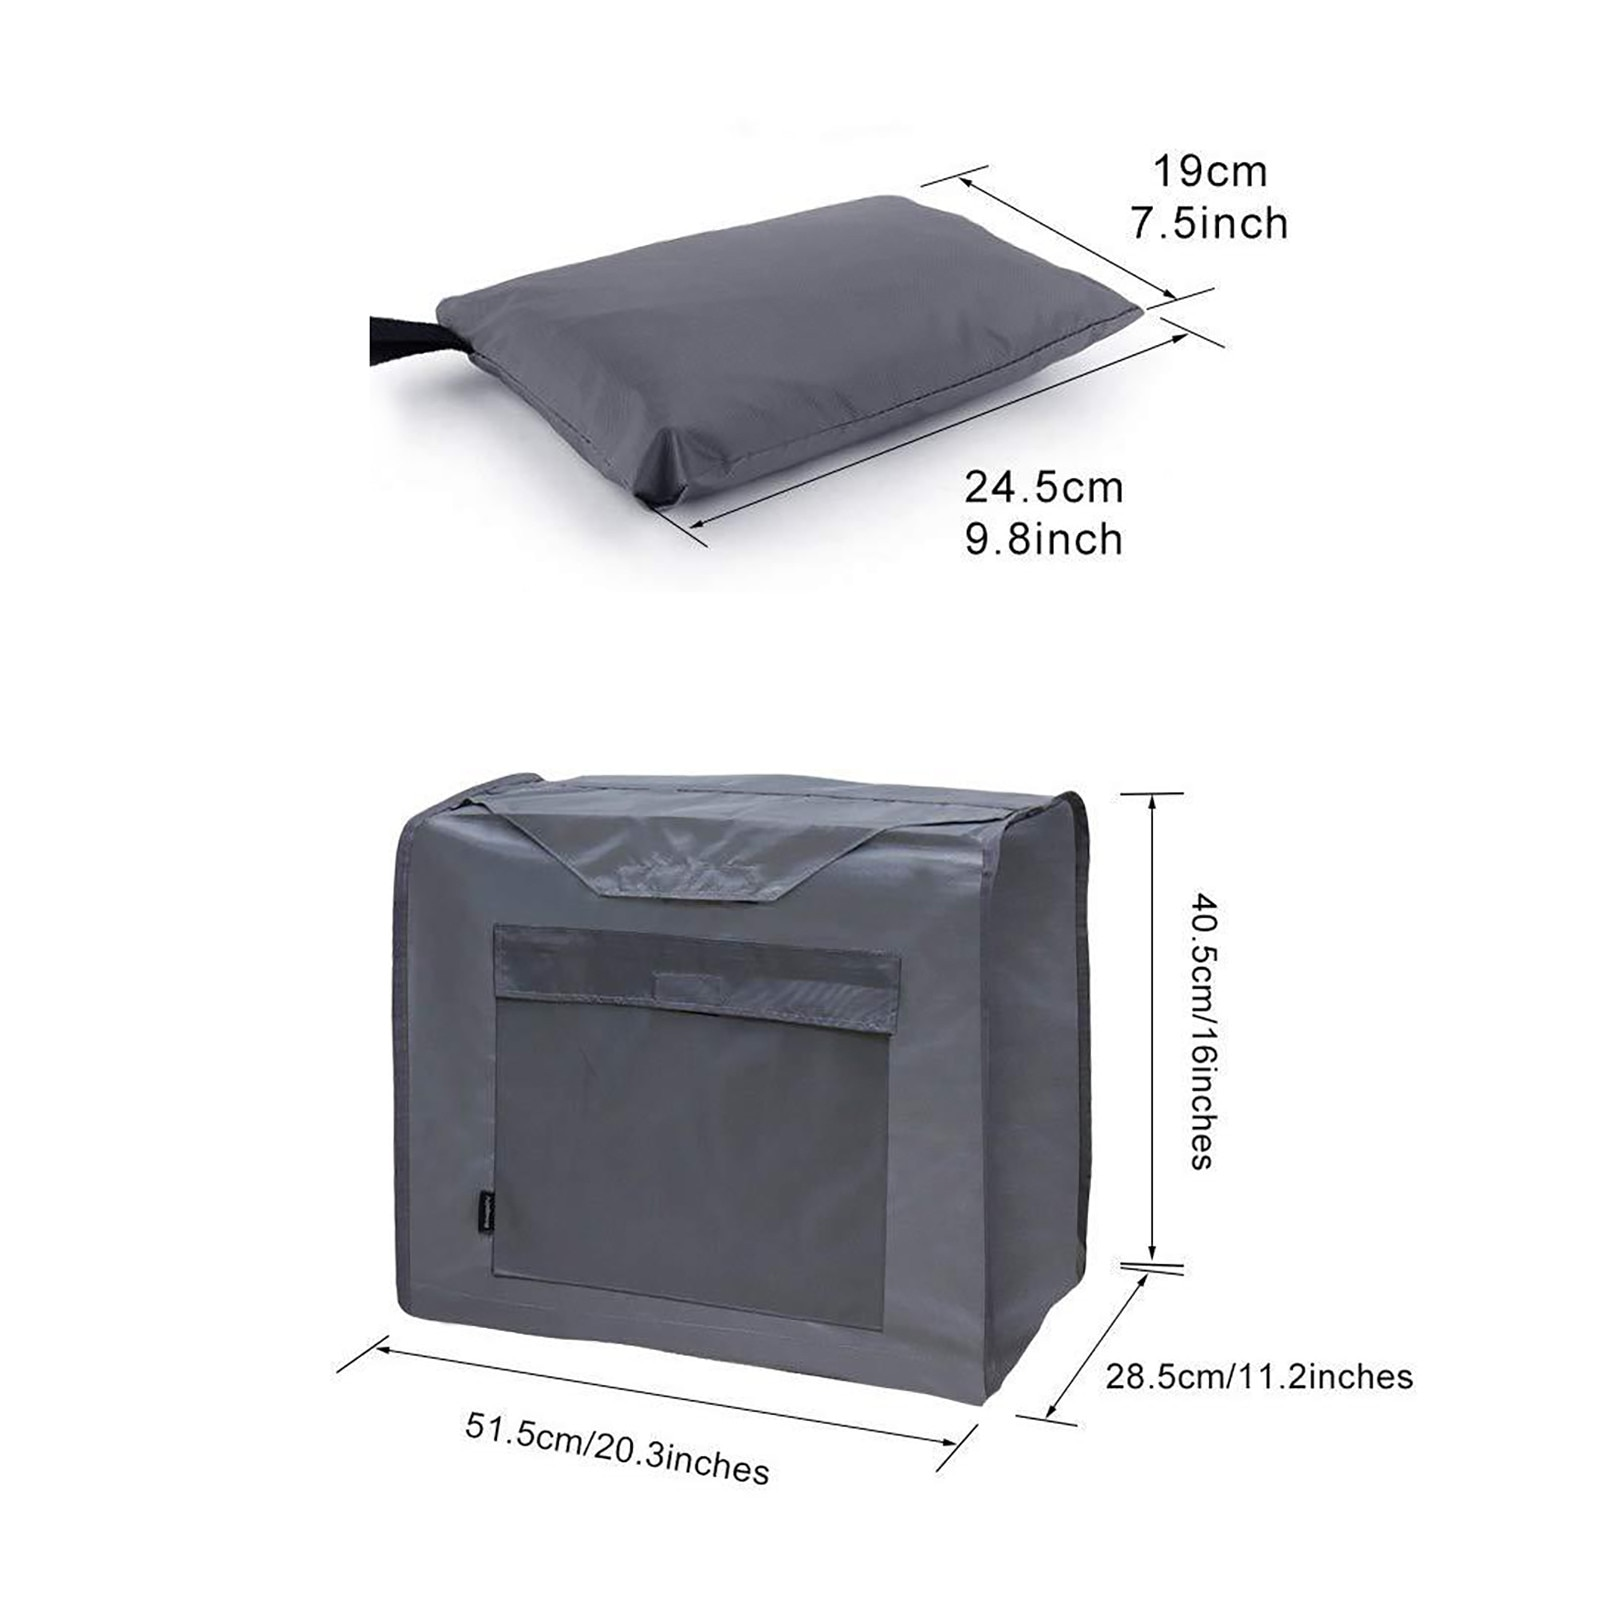 Outdoor Household Generator Rainproof Windproof And Snowproof Cover Universal Generator Cover for Most Generator 5000 to 10000W enlarge